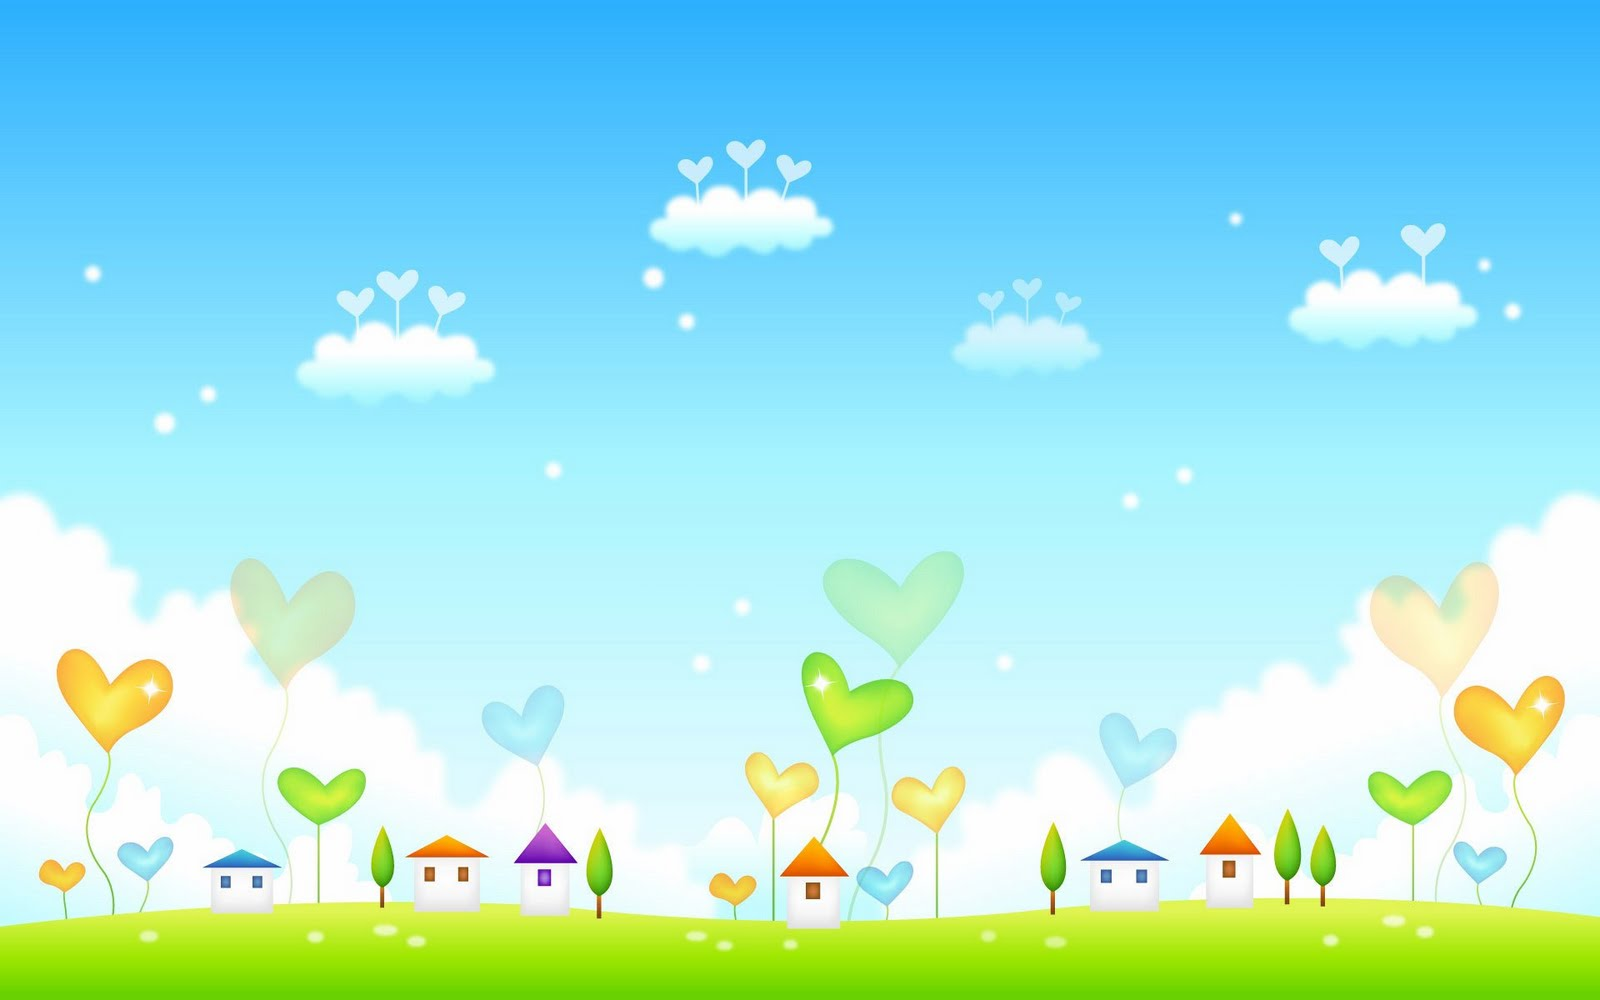 Children Background Images - WallpaperSafari